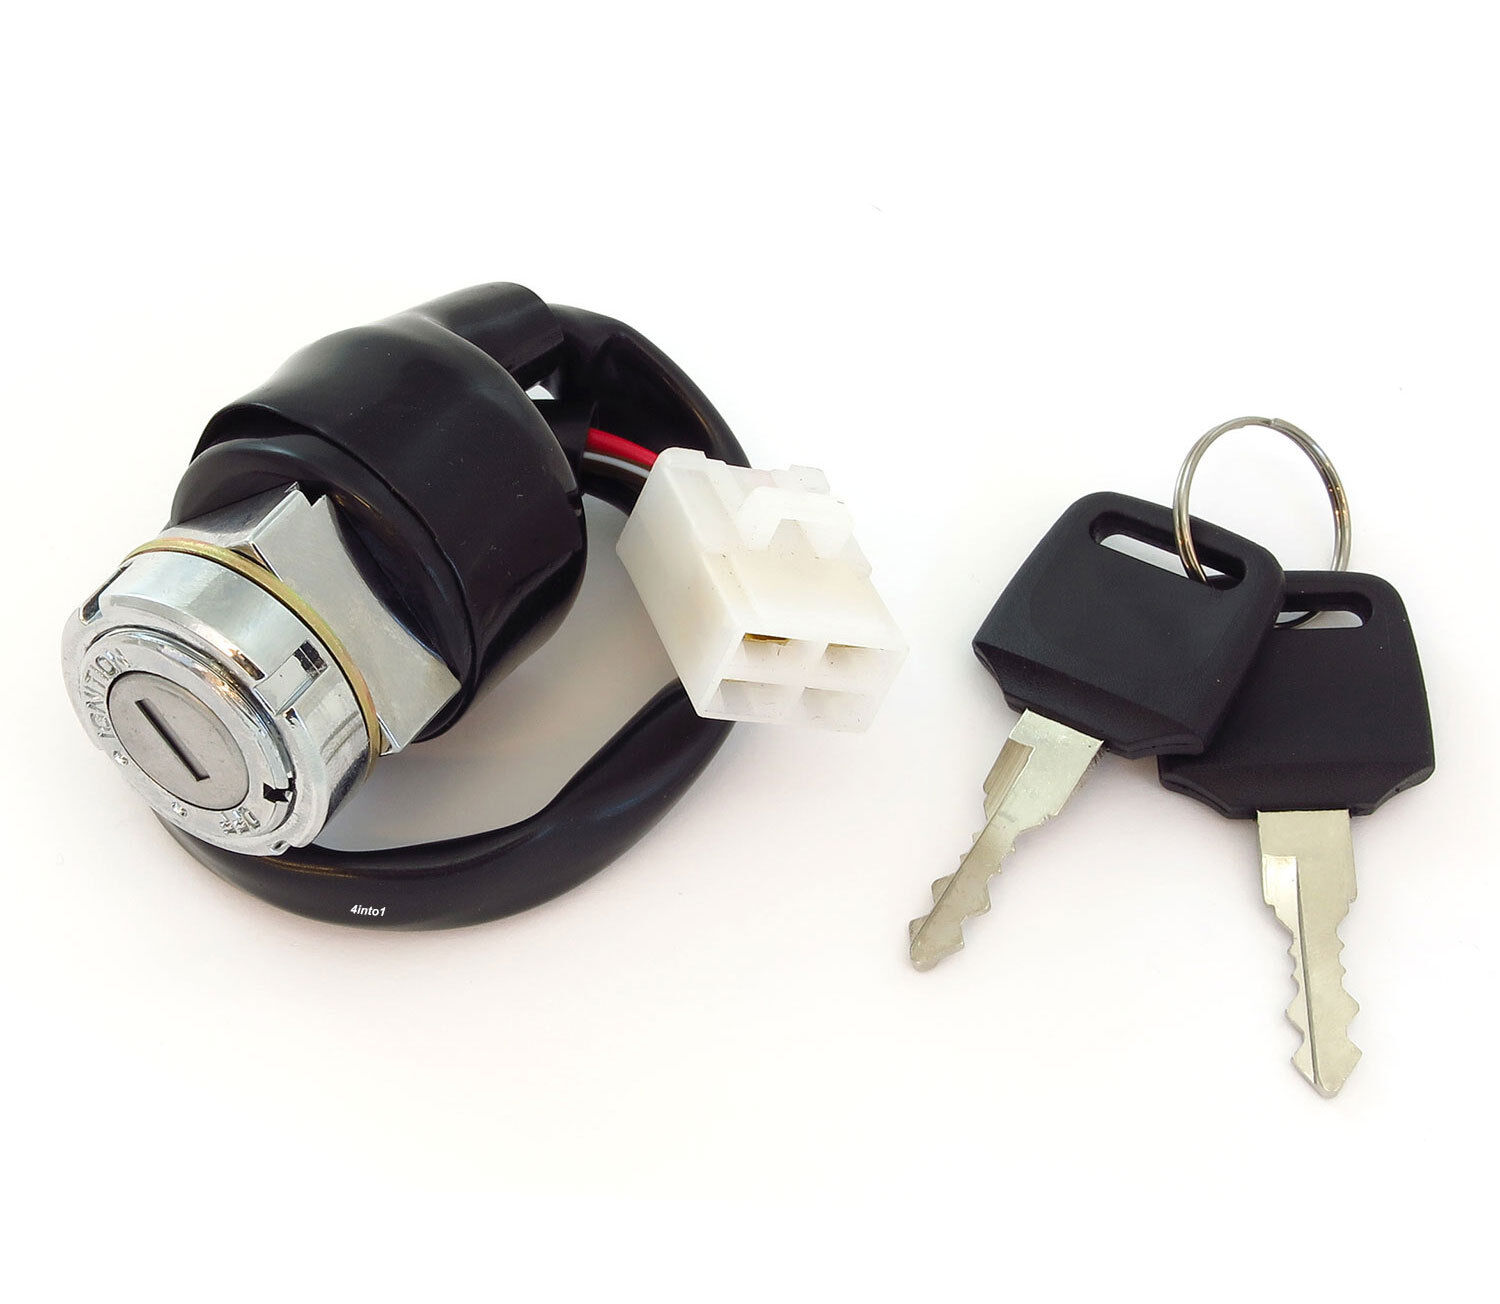 visionary ignition switch images - HD1500×1304